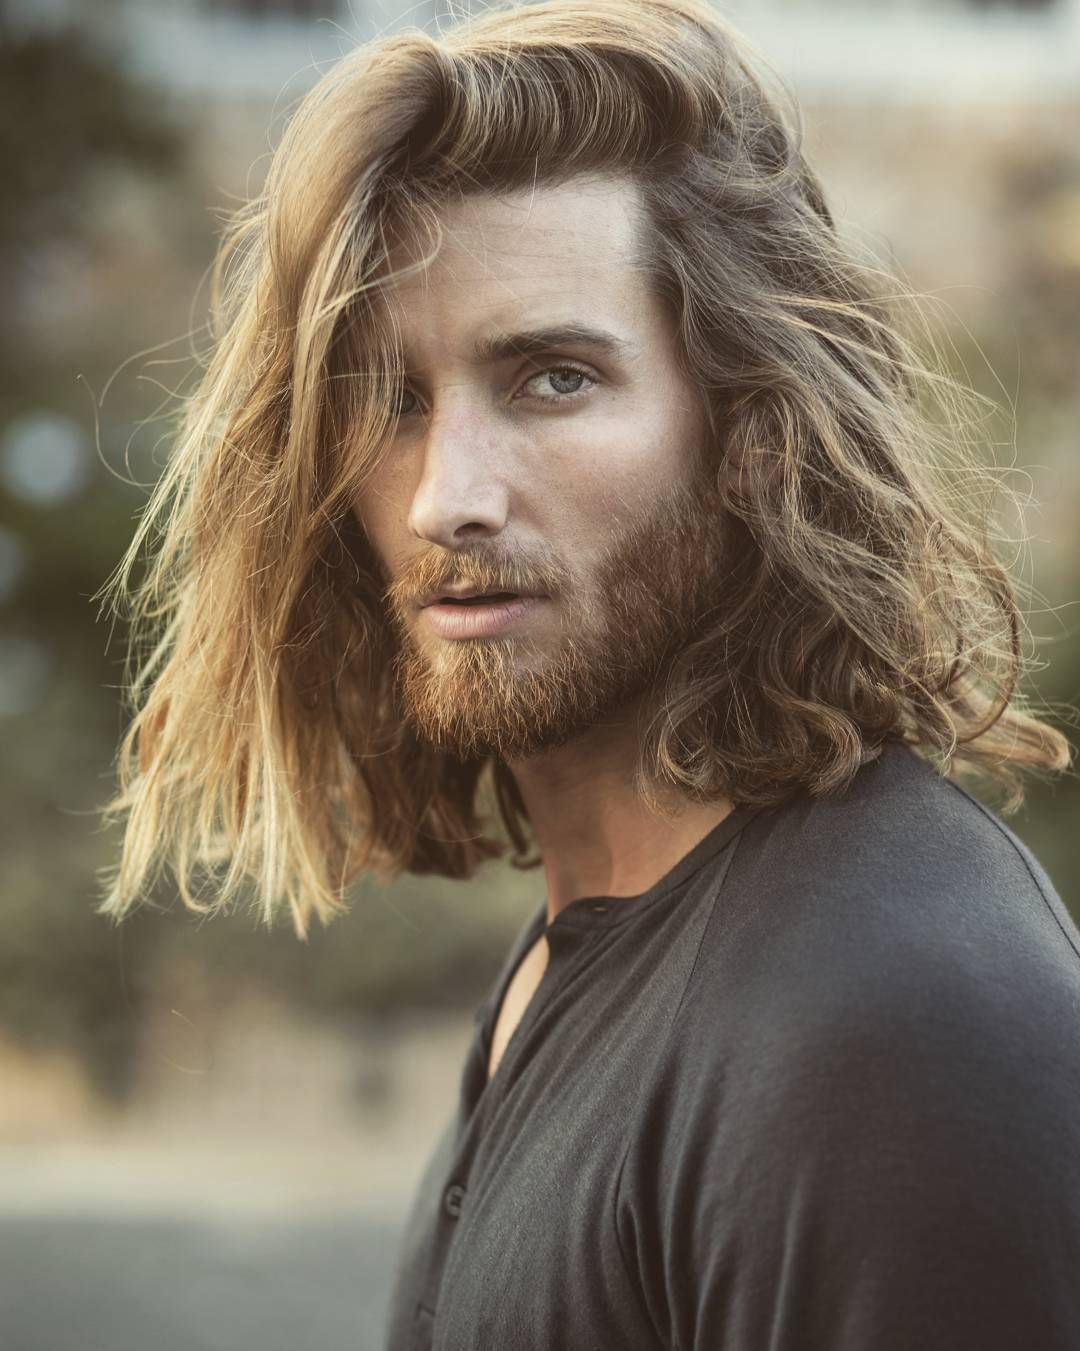 Awesome 50 Ideas For Chin Length Hair For Men Easy And Stylish Long Hair Styles Men Chin Length Hair Long Hair Styles